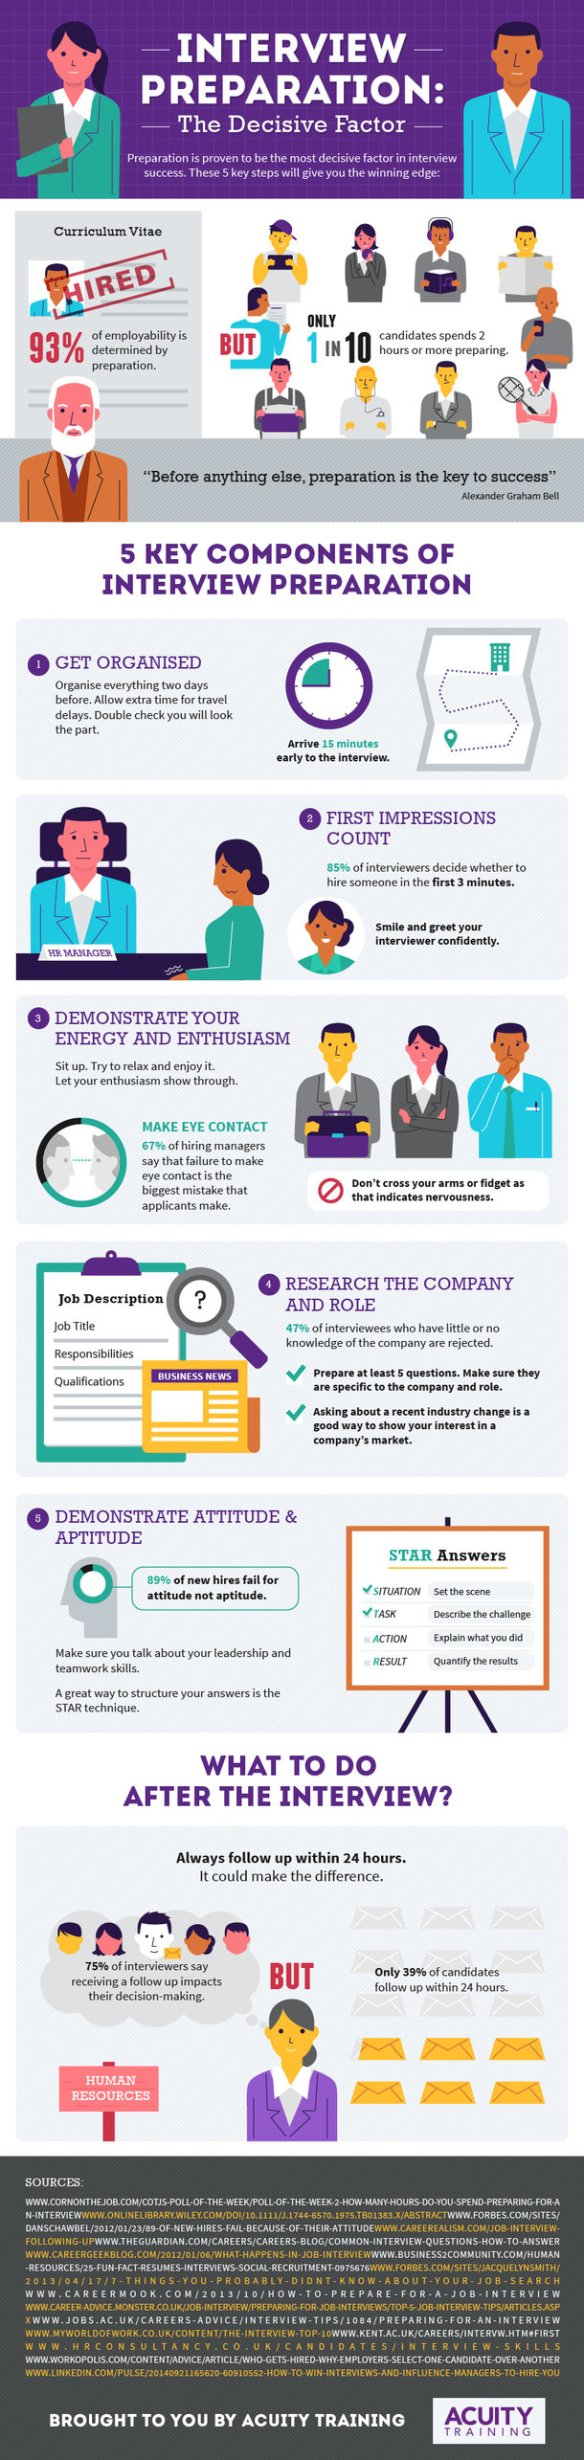 interview shropshire apprenticeships interview infographic